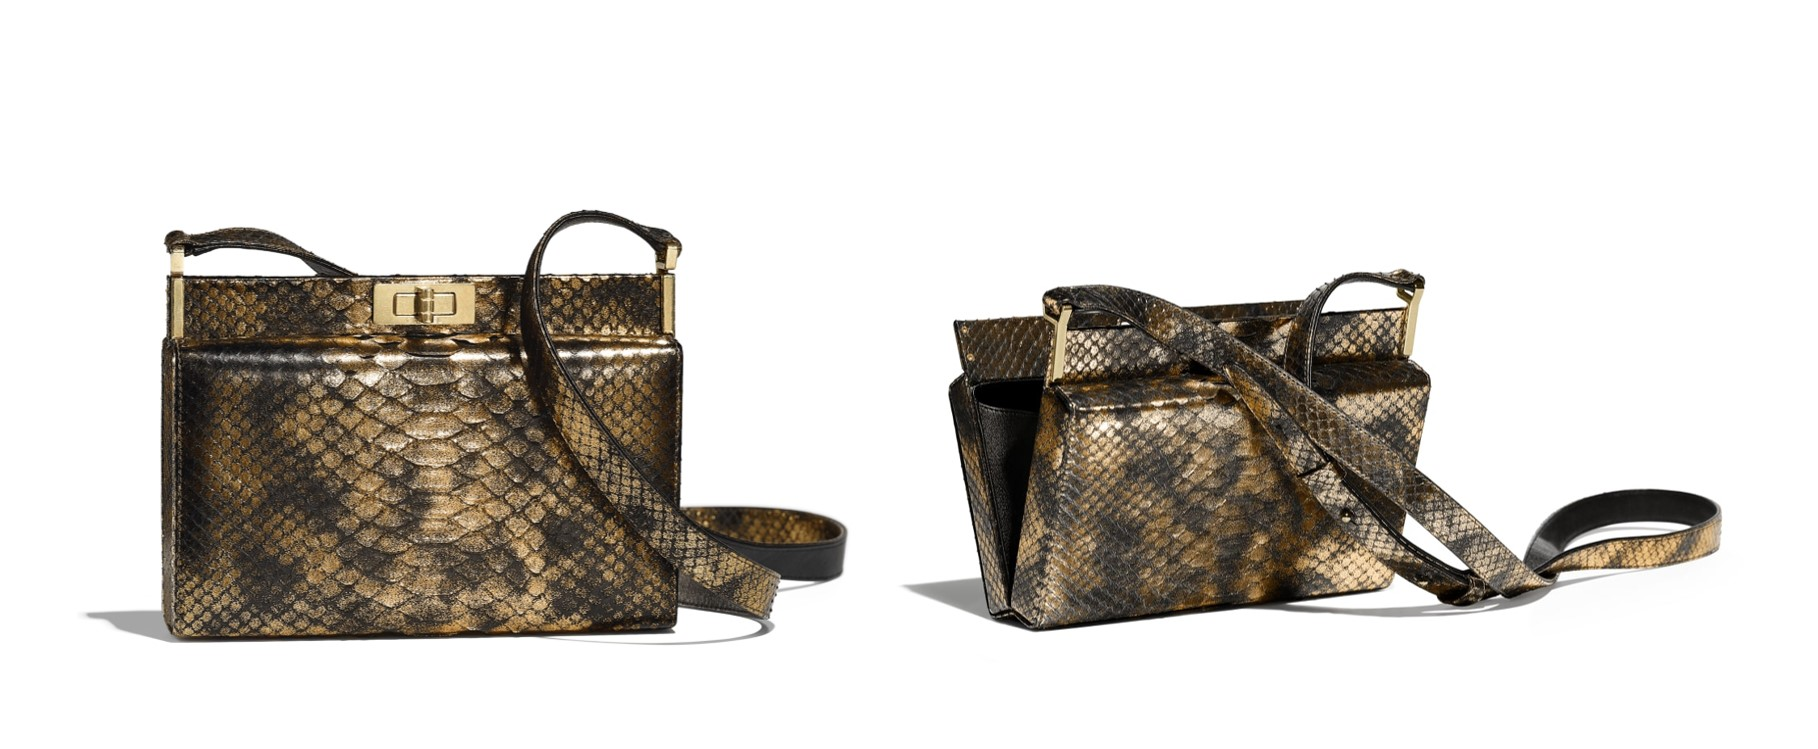 10 best Chanel bags to buy this season python skin clutch